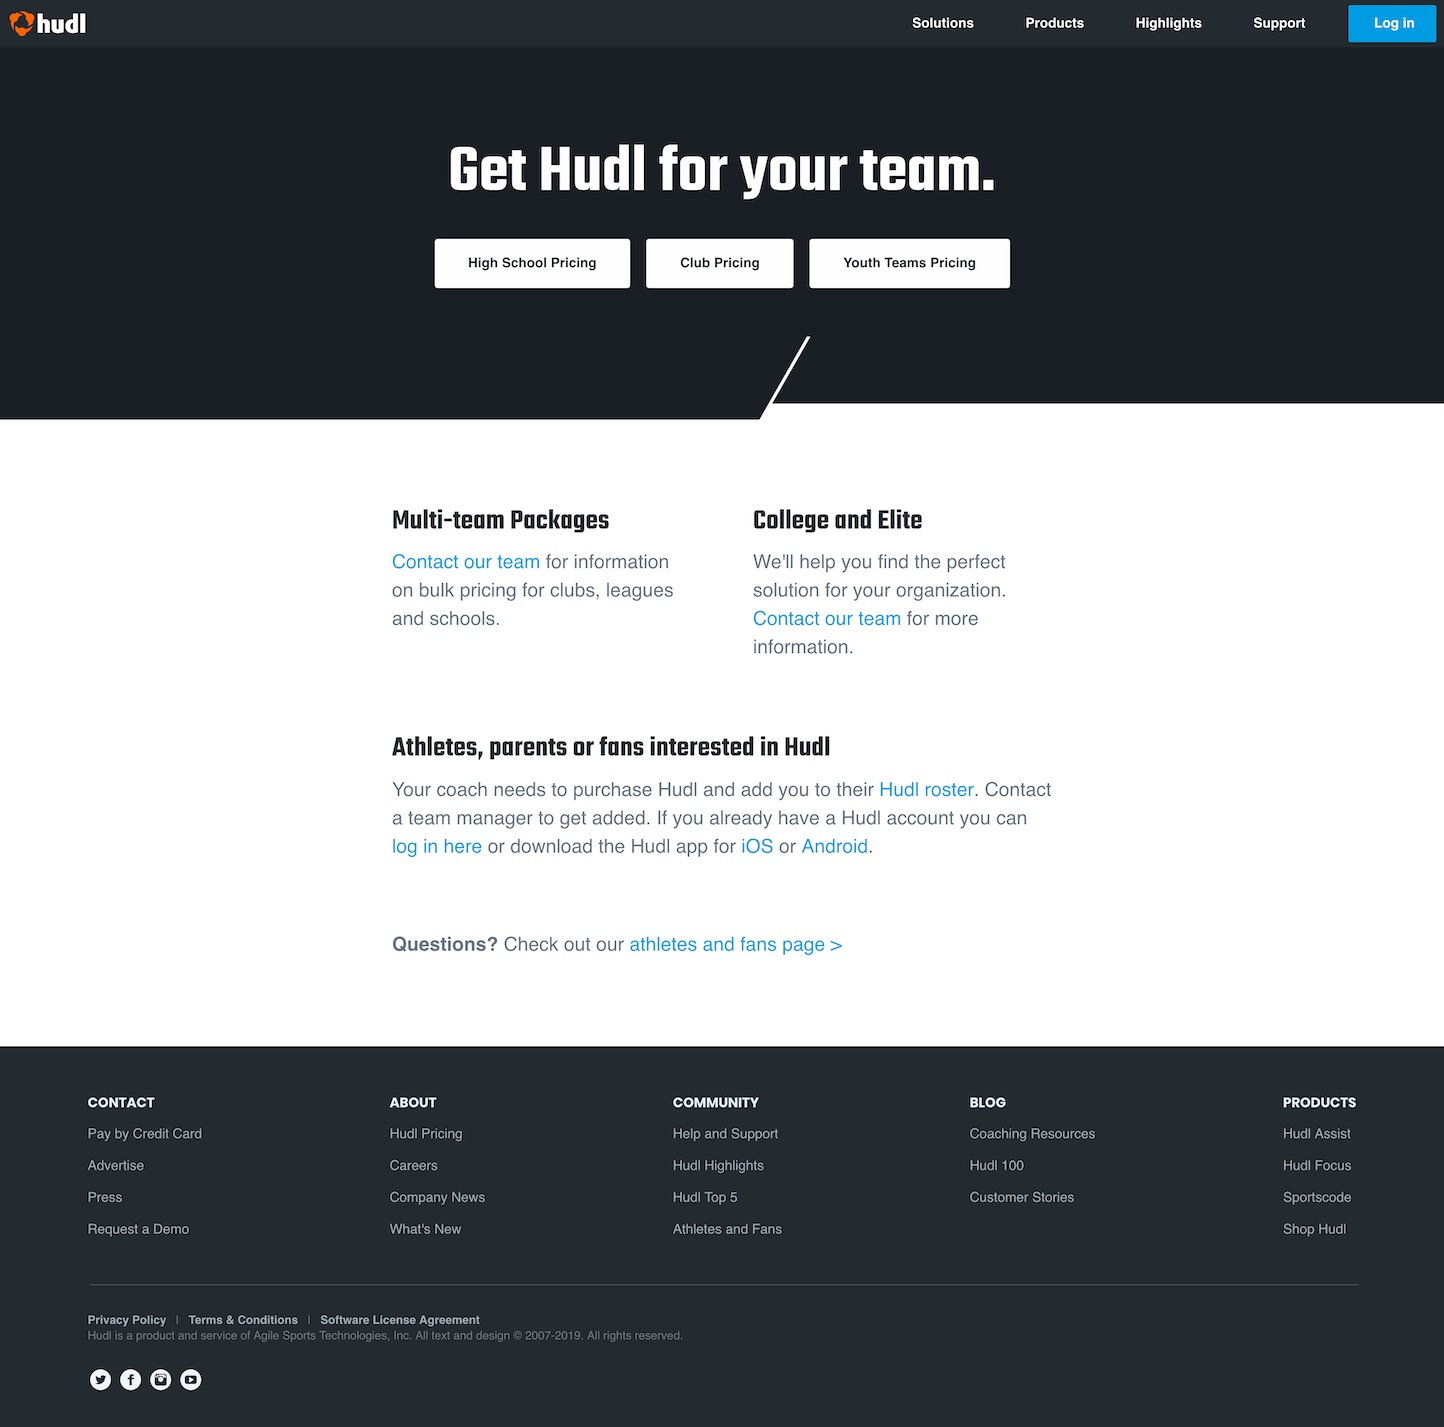 Screenshot of the Pricing page from the Hudl website.